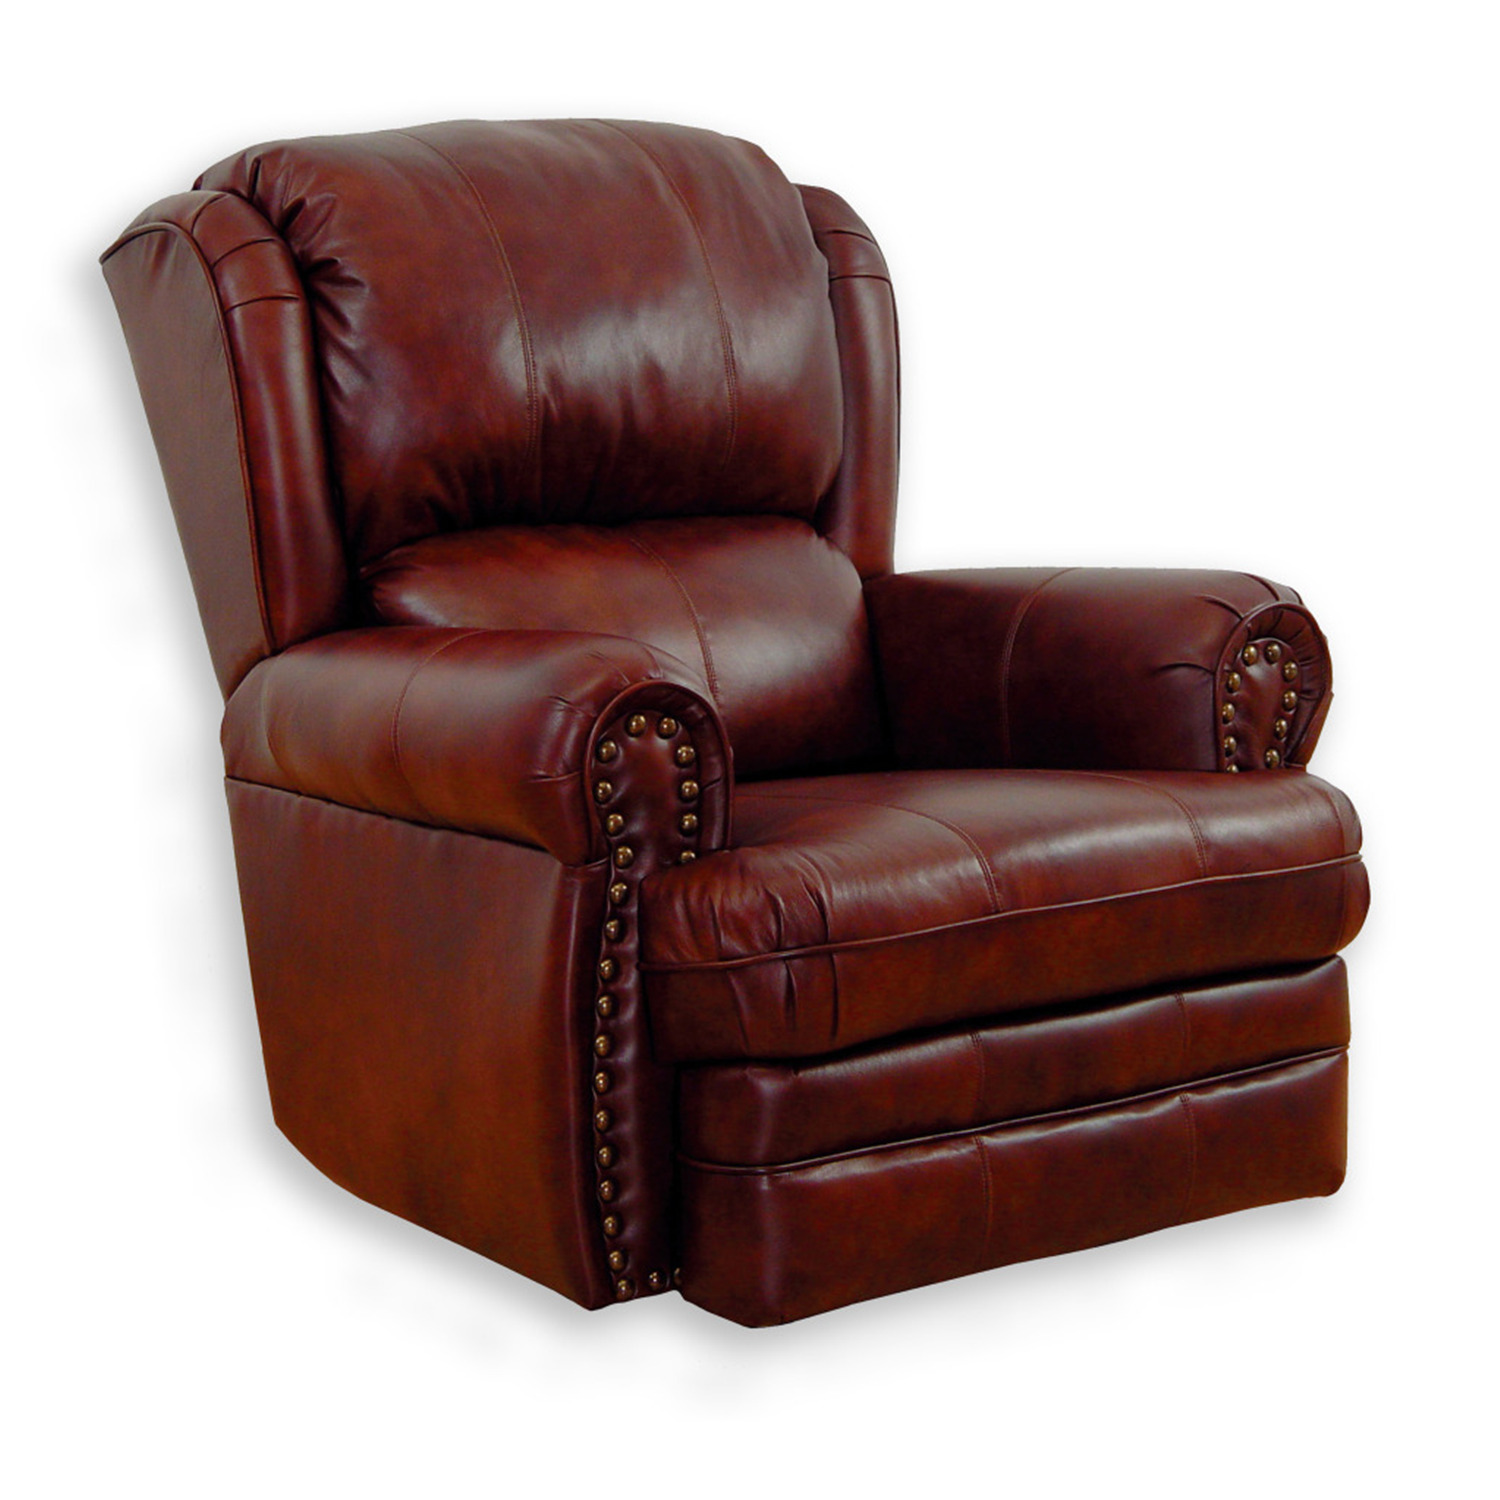 Catnapper buckingham leather rocker recliner by oj commerce Catnapper loveseat recliner